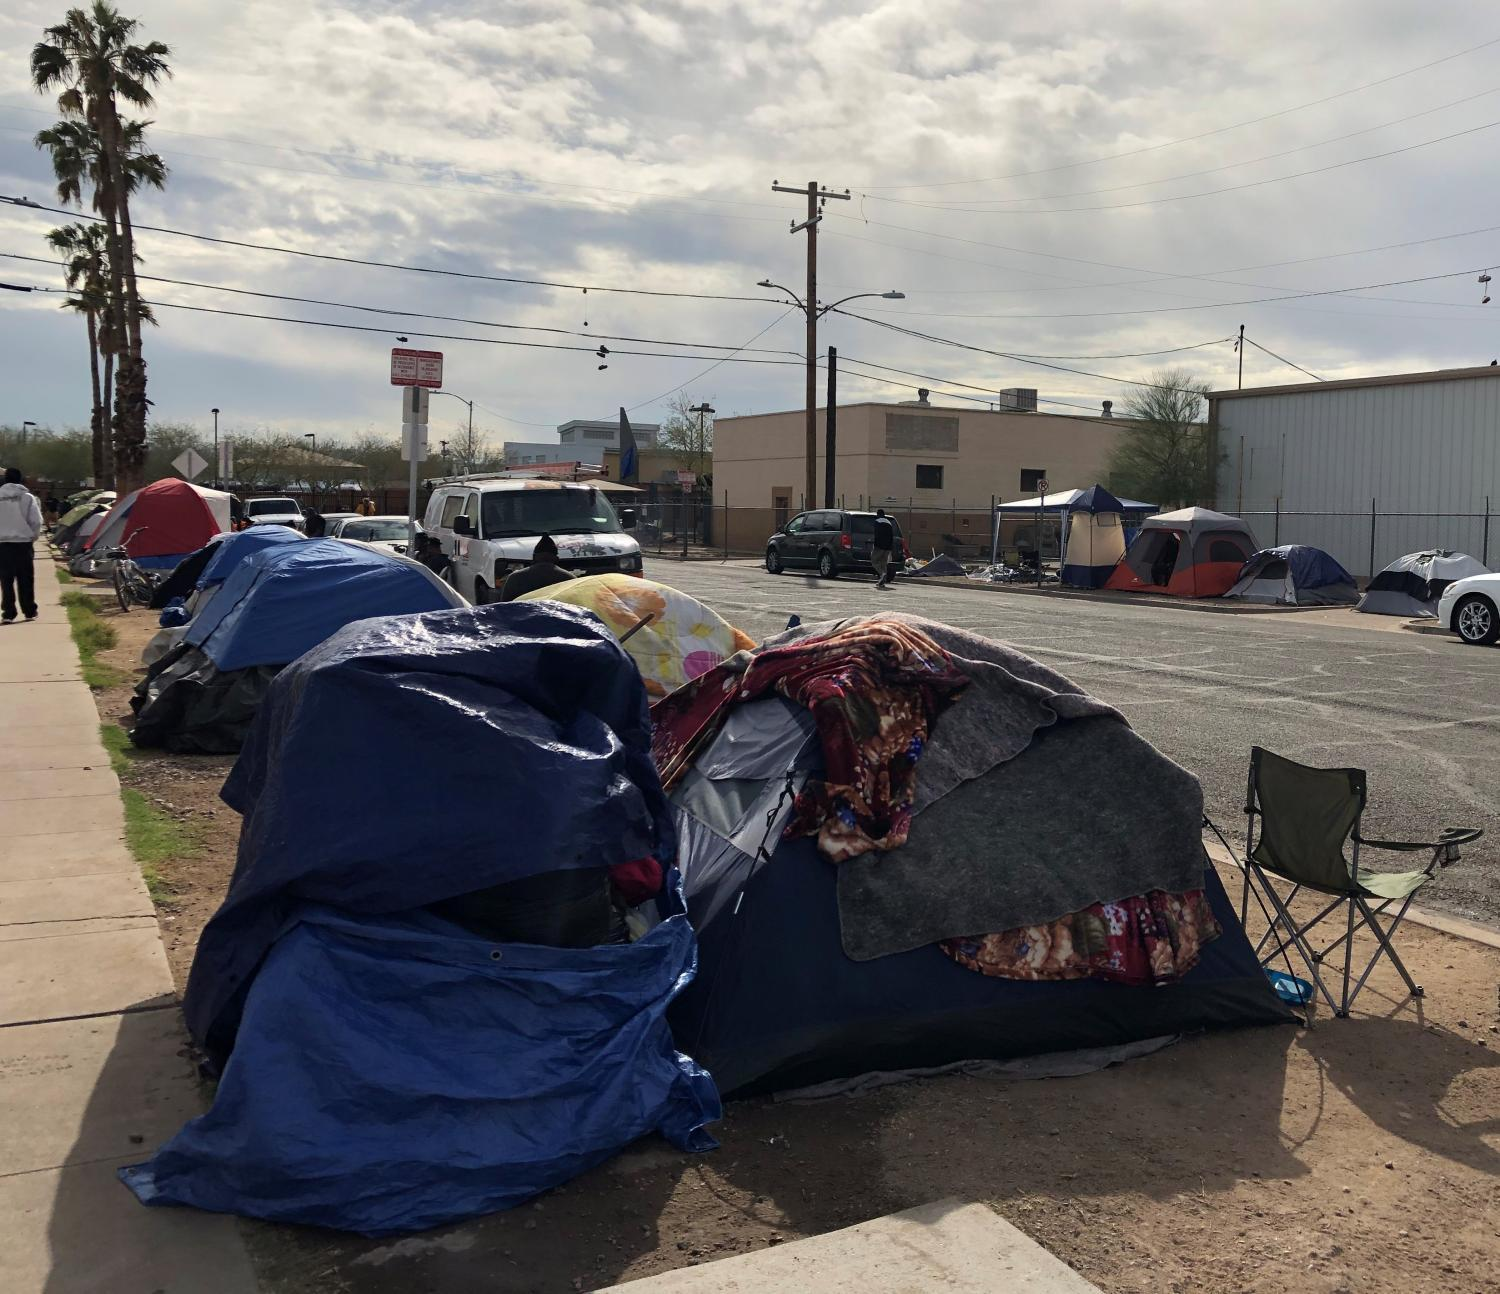 Tents line the sidewalks near the intersection of 12th Avenue and Madison Street near the state capitol on January 29, 2020. This location has one of the highest densities of people living on the street in Phoenix.